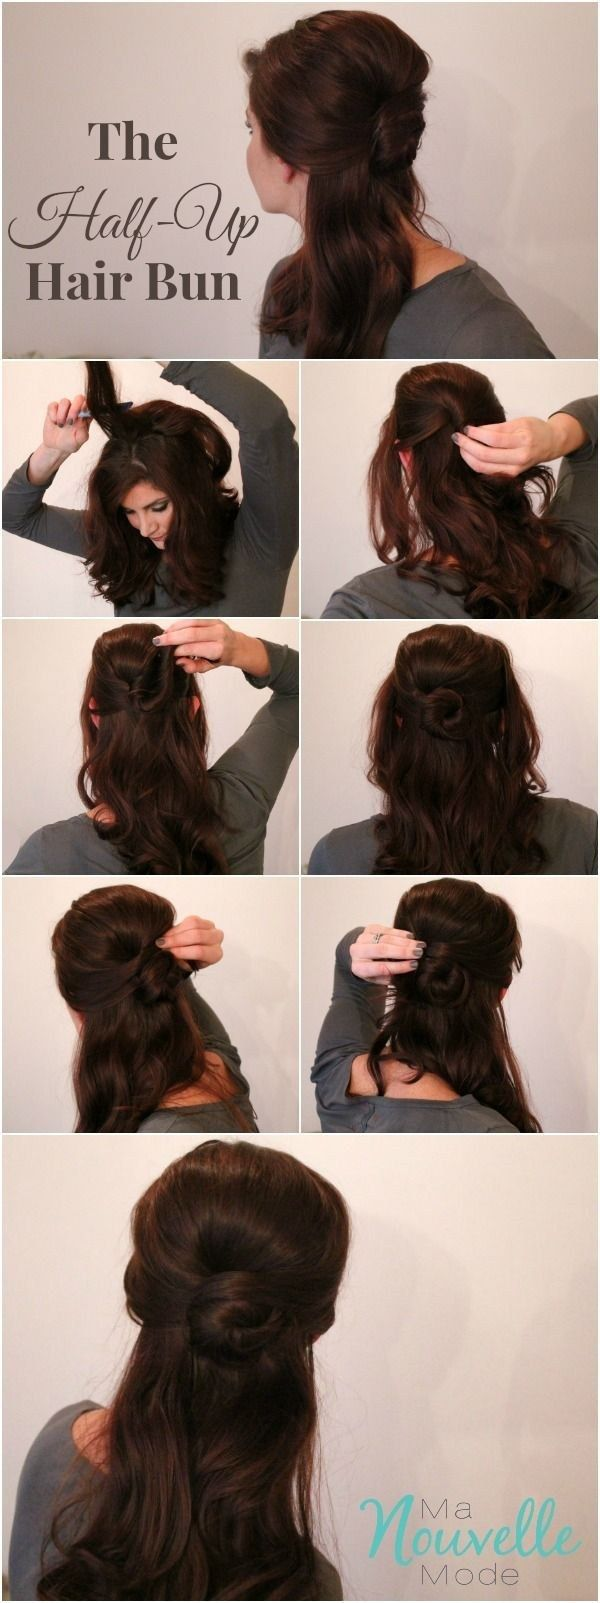 Trendy Braided Hairstyle Tutorial                                                                                                                                                                                 More